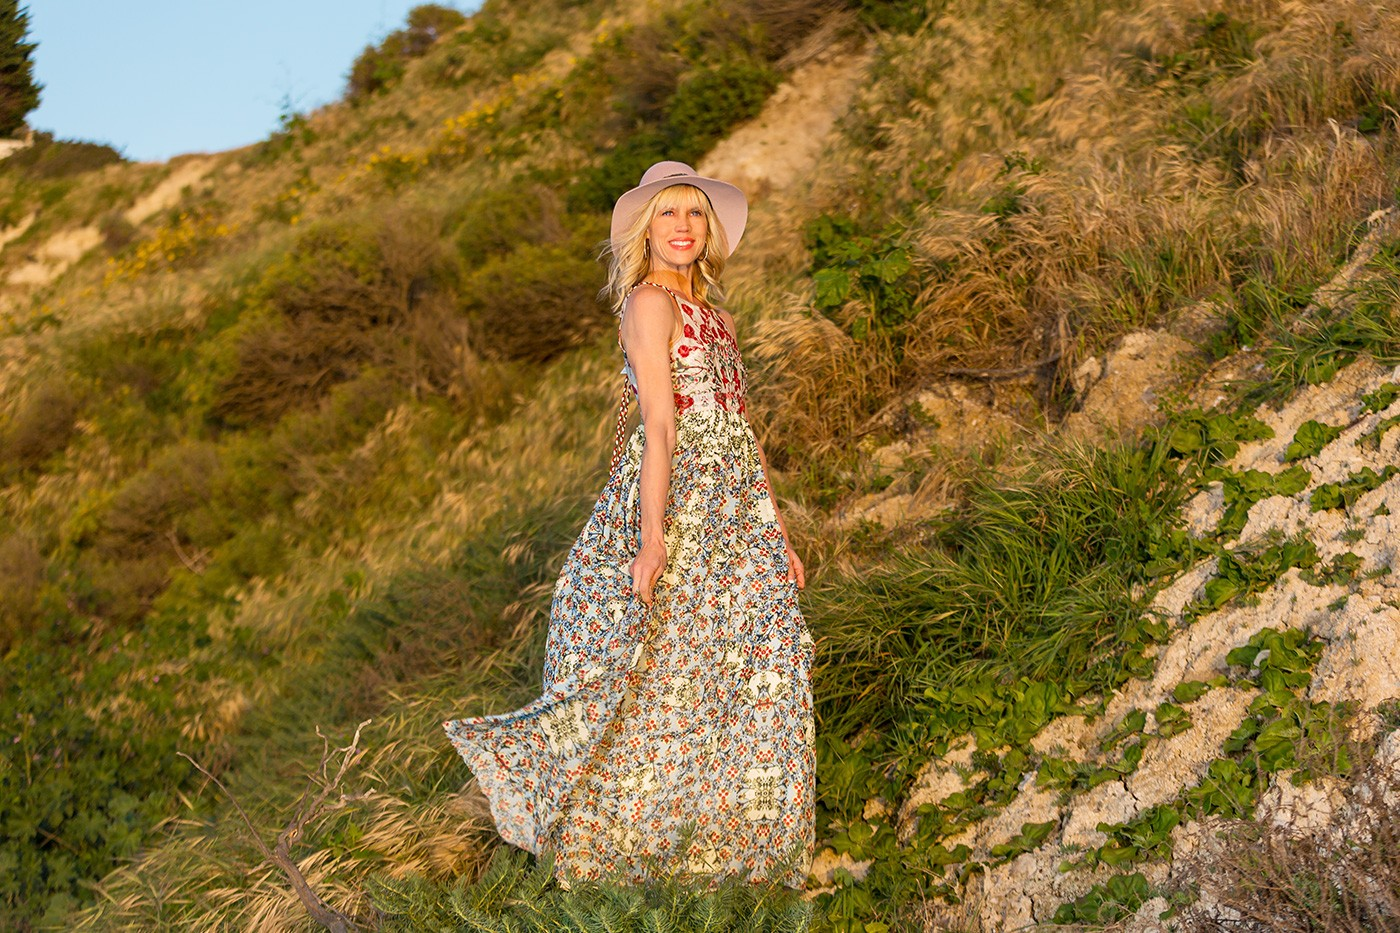 Anthropologie dress and Michael Stars hat on hillside at the beach